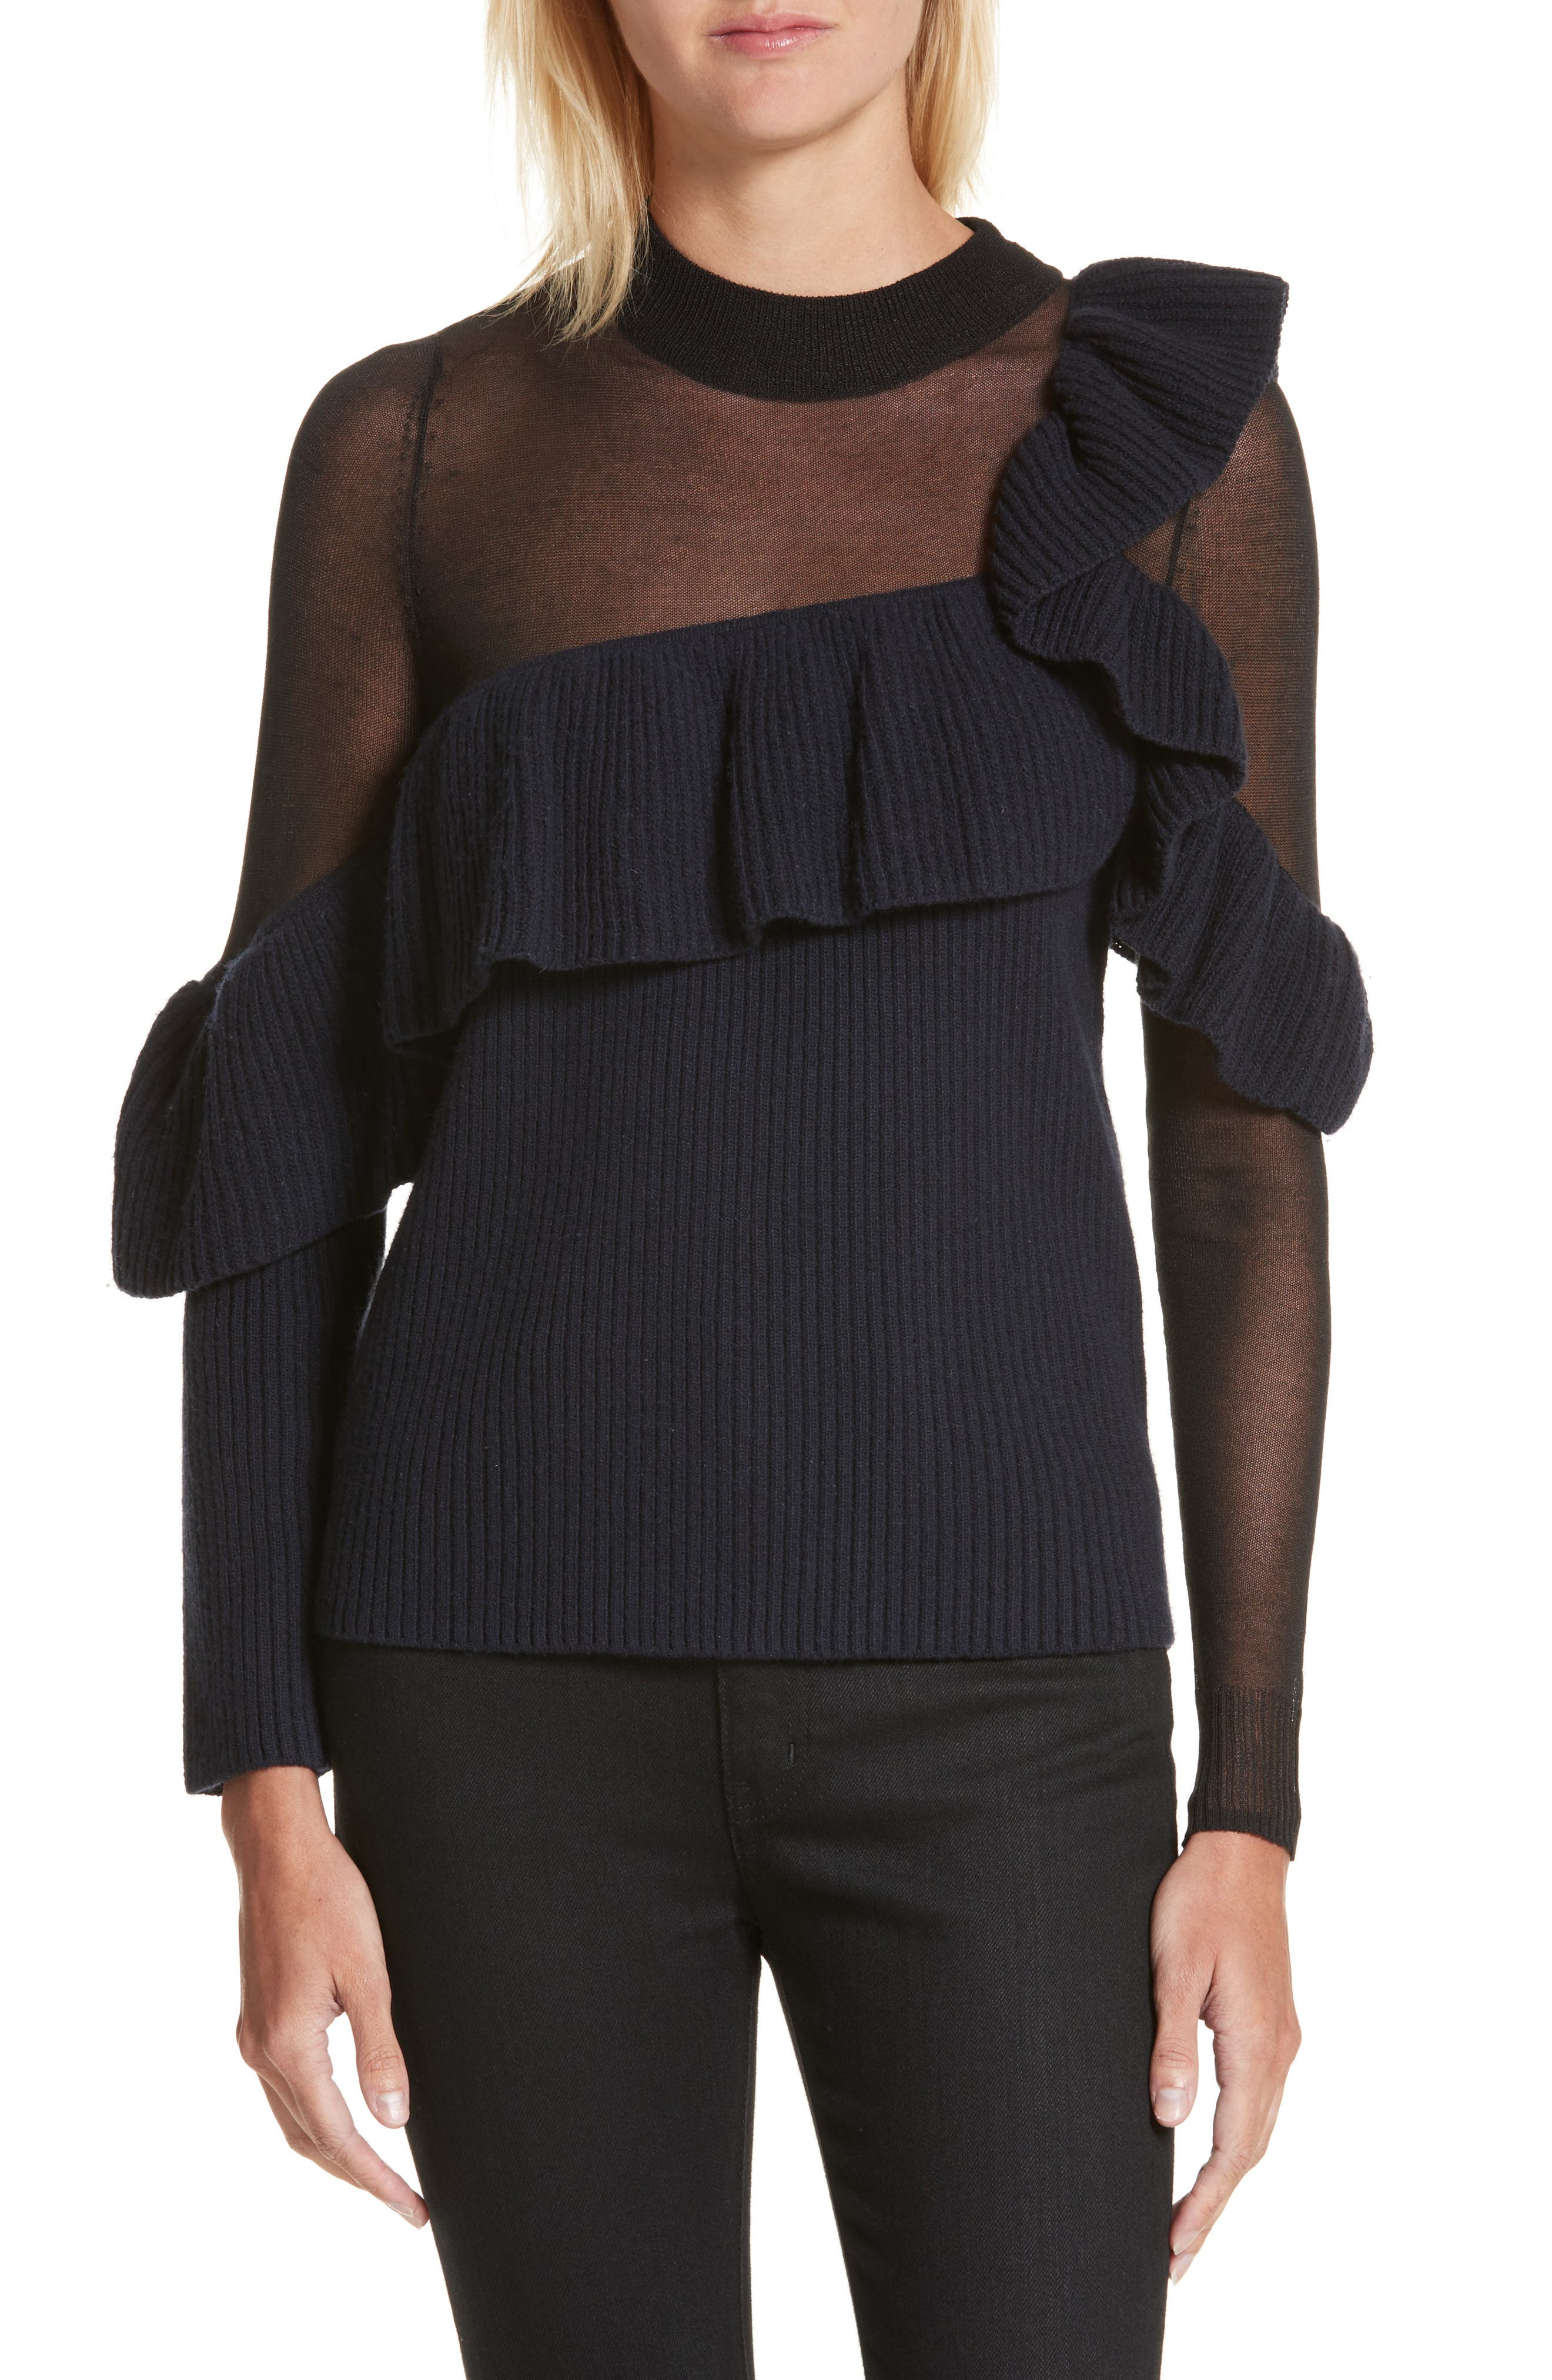 Alternate Image 1 Selected - Self-Portrait Asymmetrical Frill Illusion Sweater